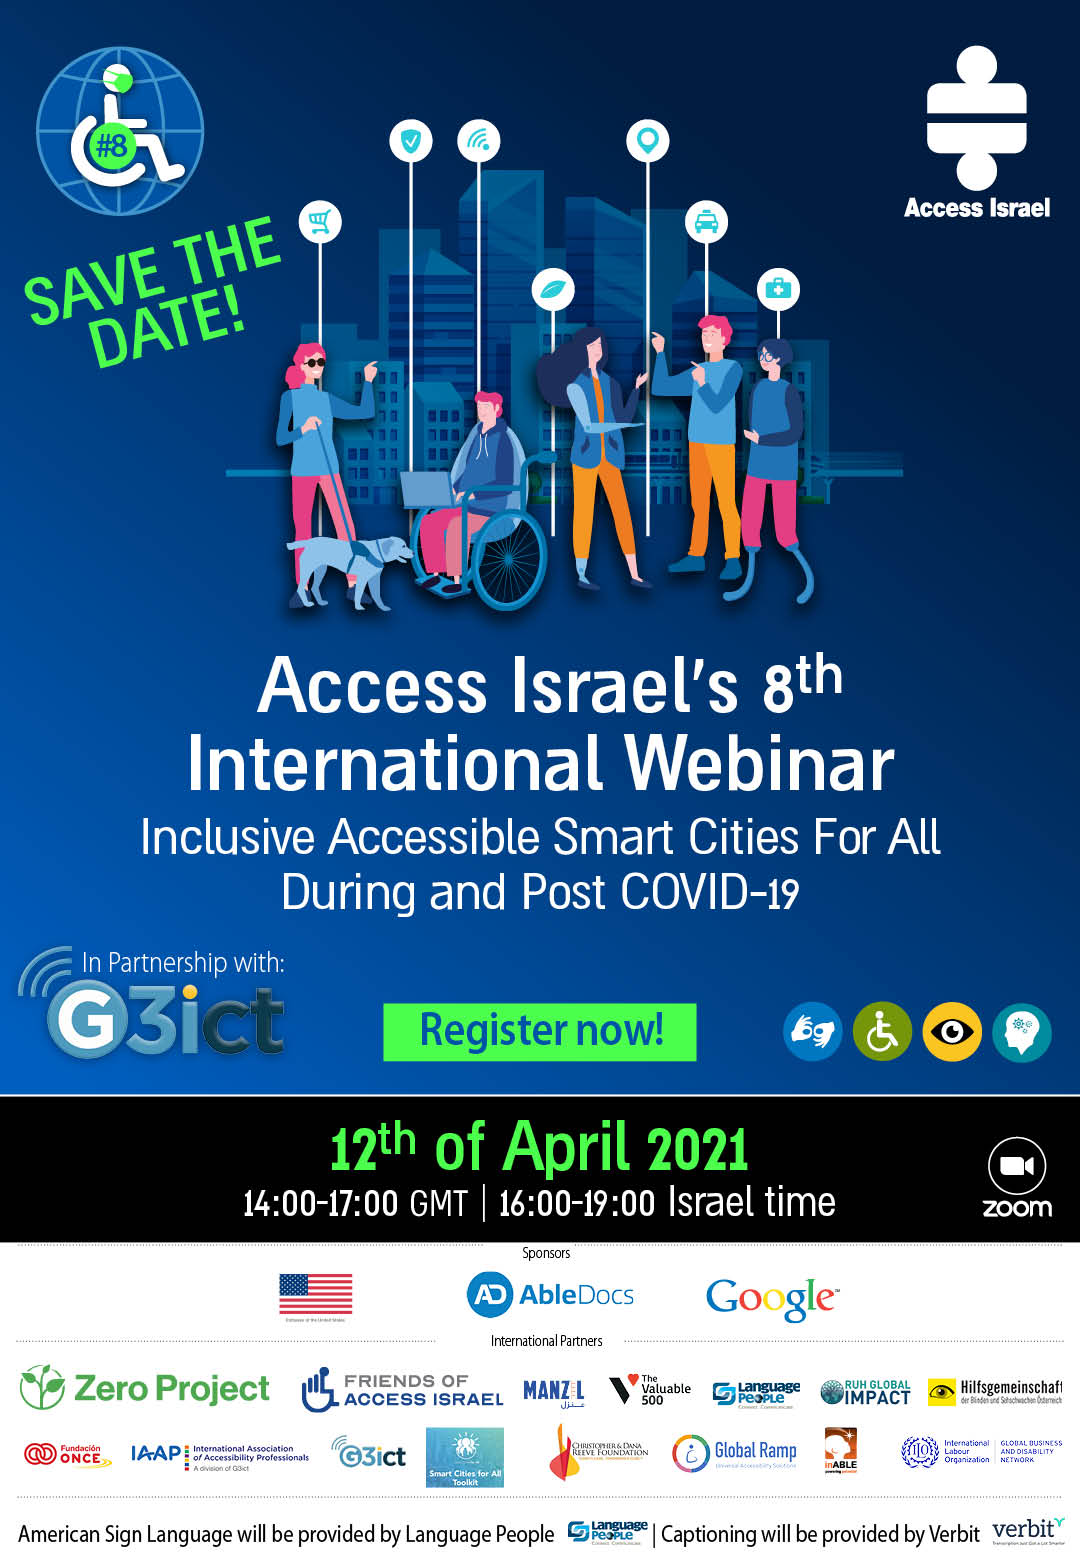 Save the Date! Access Israel´s 8th Intenational Webinar: Inclusive Accessible Smart Cities For All During and Post COVID-19. Register now! 12th of April 2021, 14:00-17:00 GMT, 16:00-19:00 Israel time